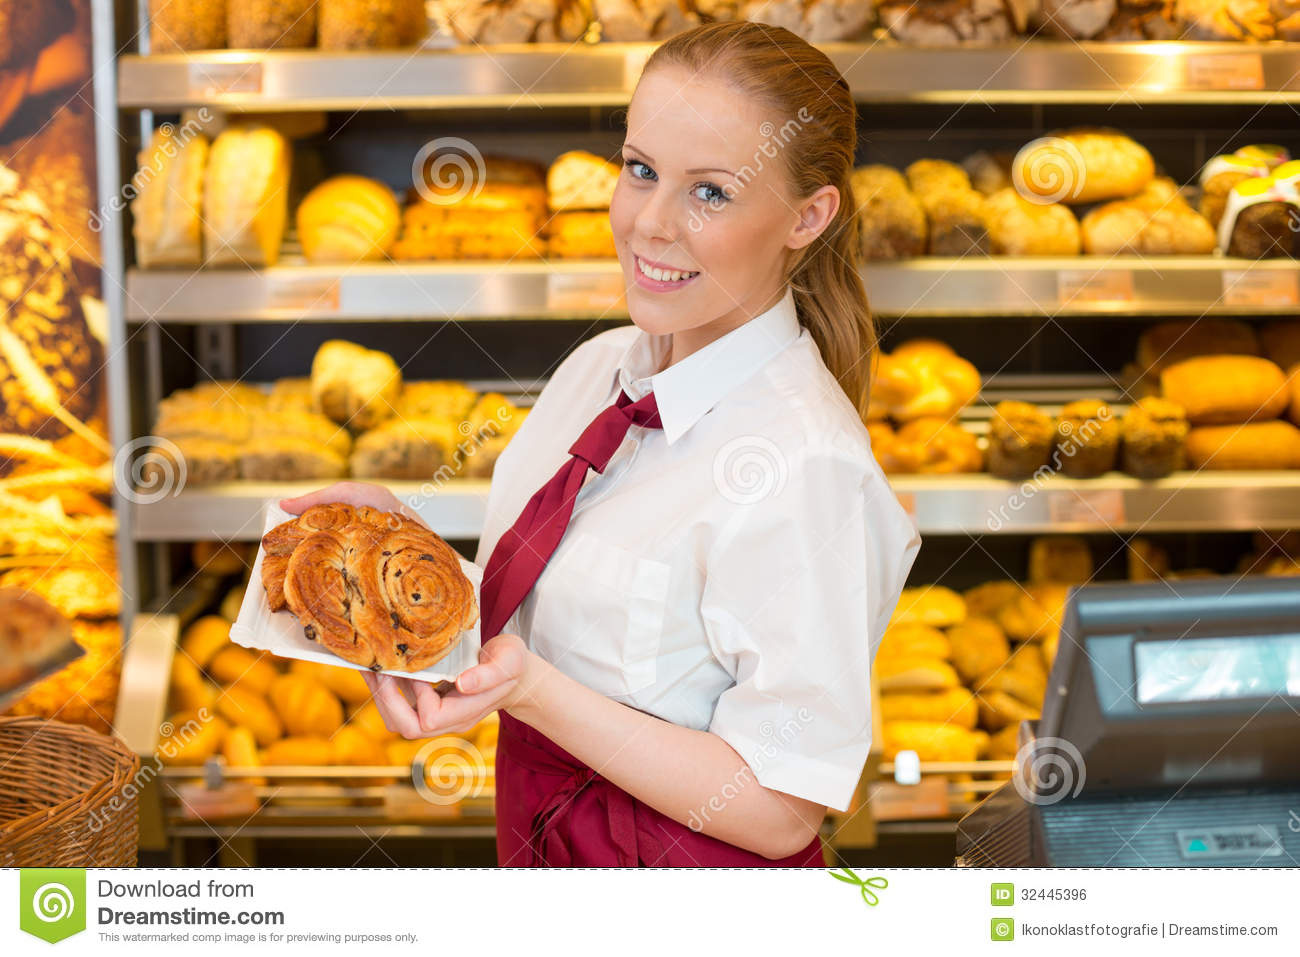 Shopkeeper In Bakery Giving Bread To Customer Royalty Free